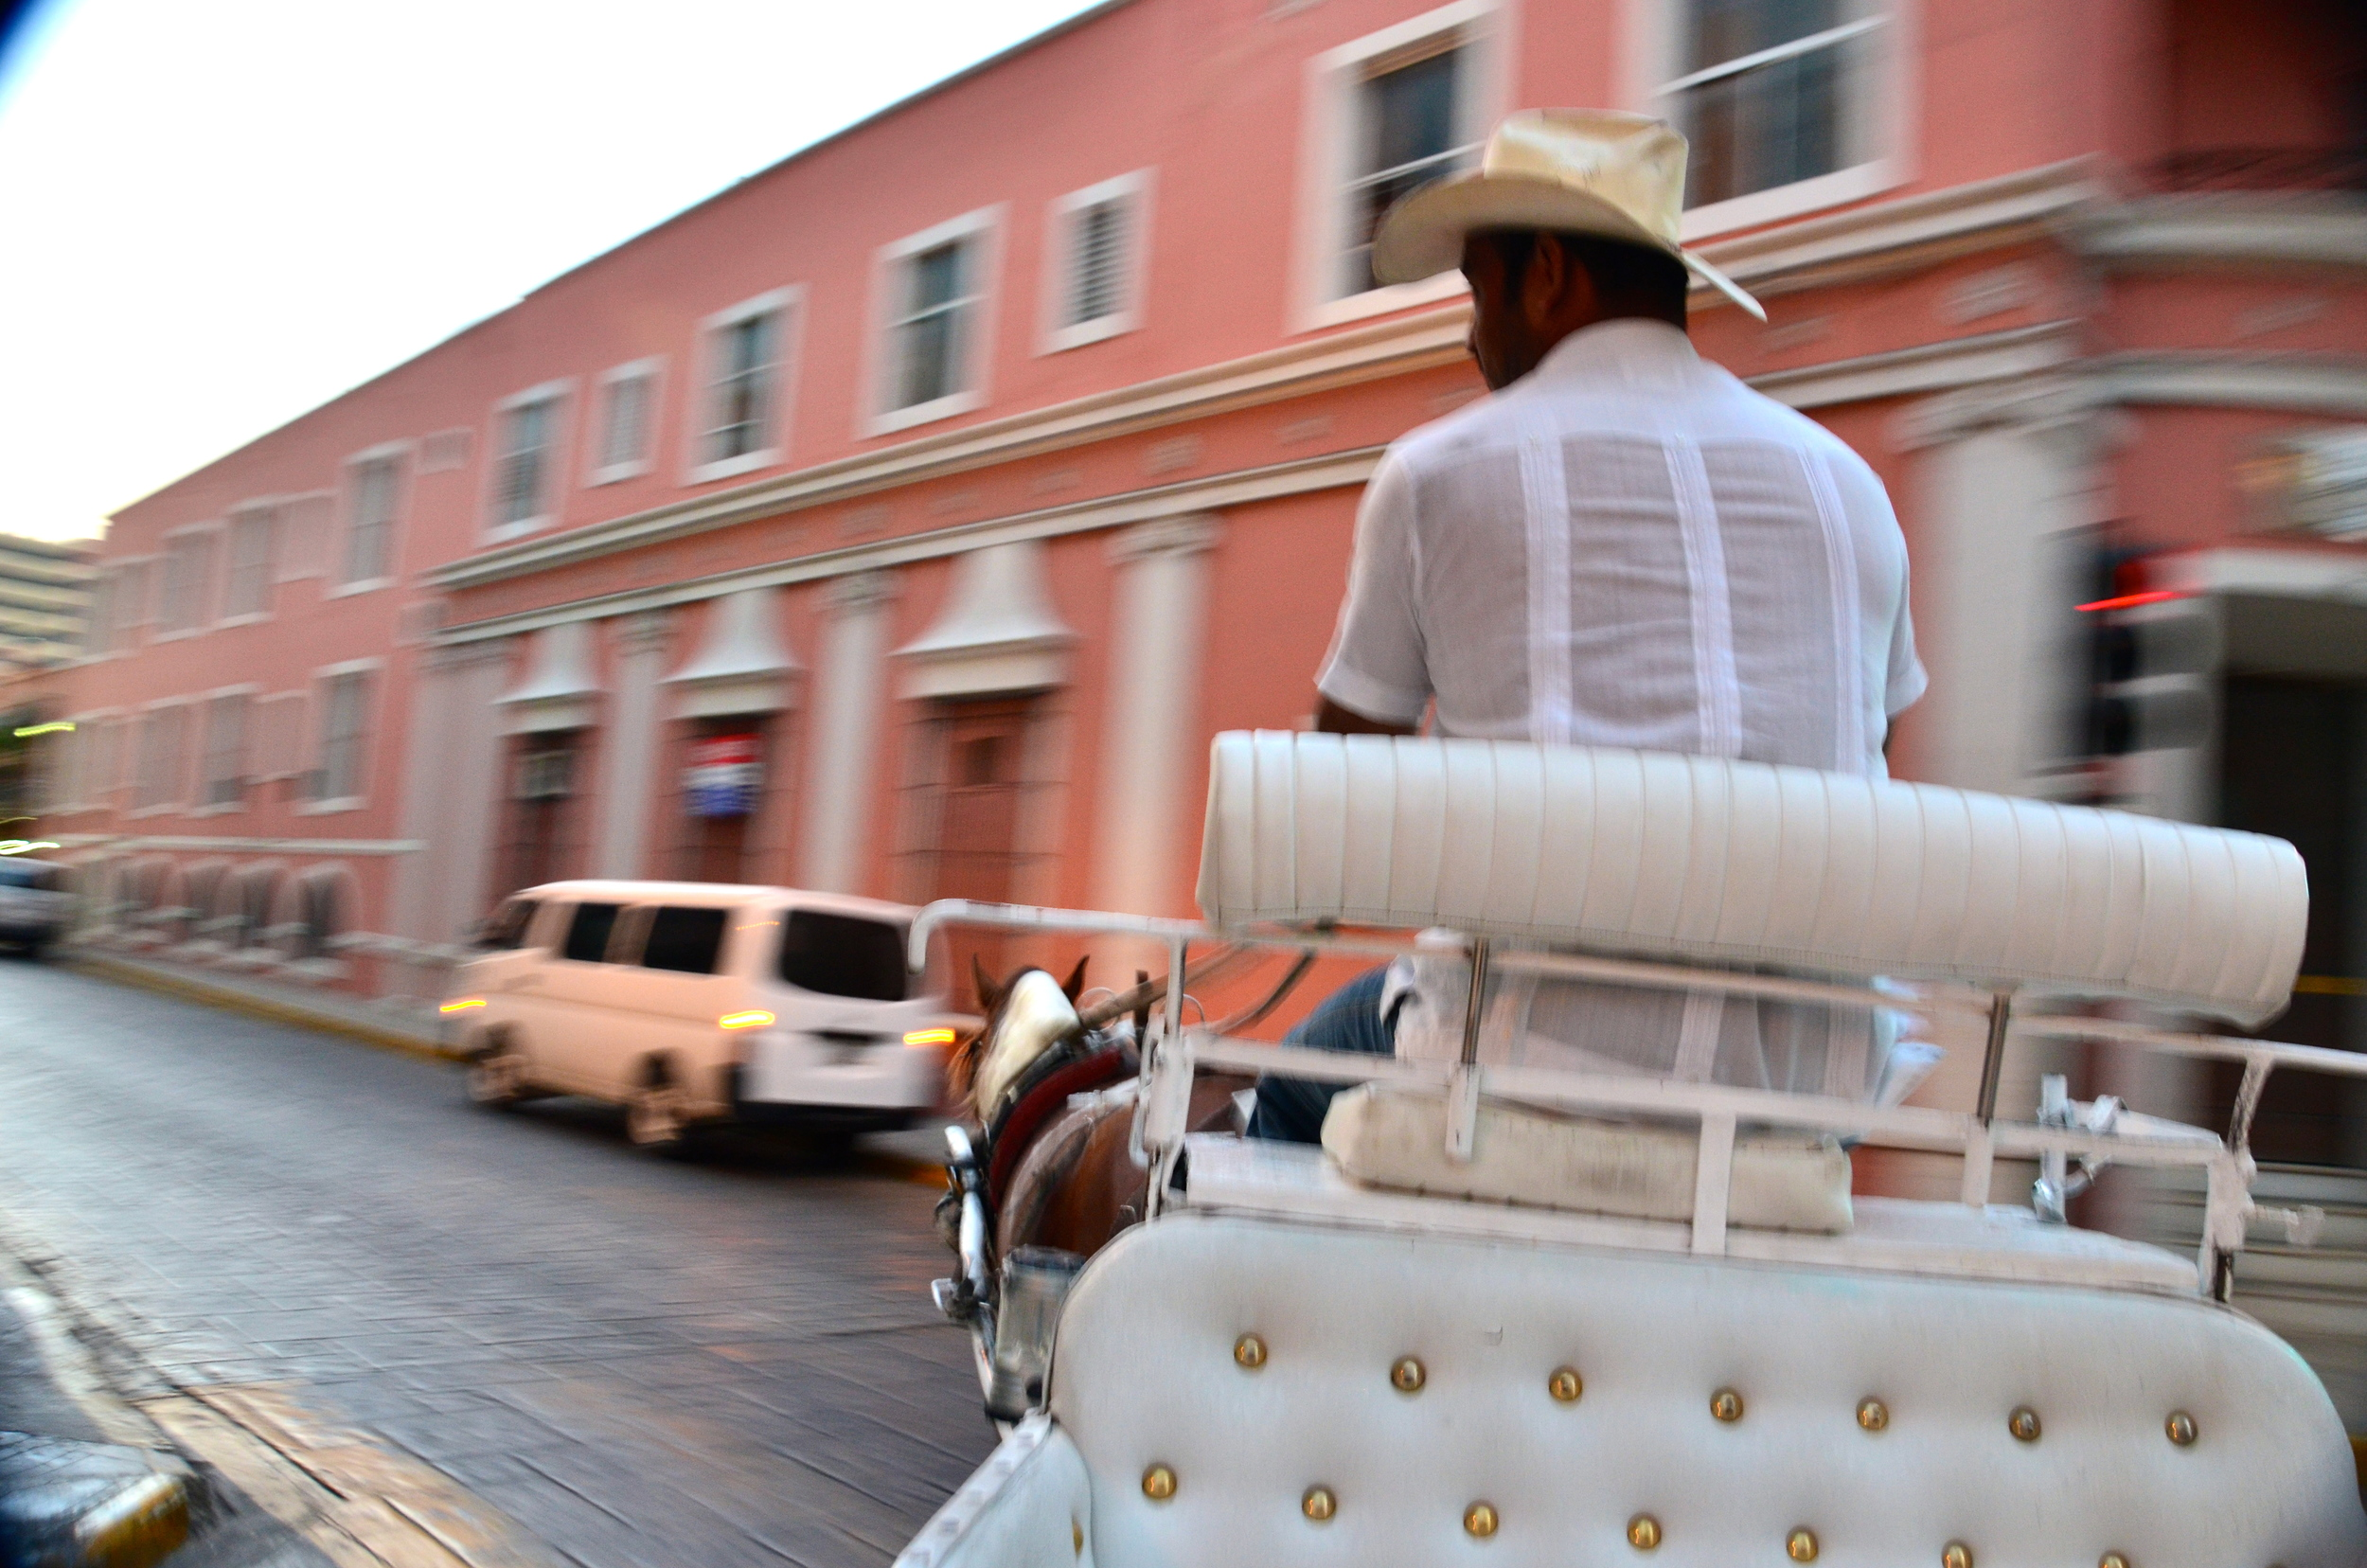 Our horse and carriage ride through the streets of Merida, was amazing!  We were a little hesitant because the last horse and carriage ride that Kev and I took went rogue, breaking out into a gallop, running over the curbs, through a light and crashing into a taxi!